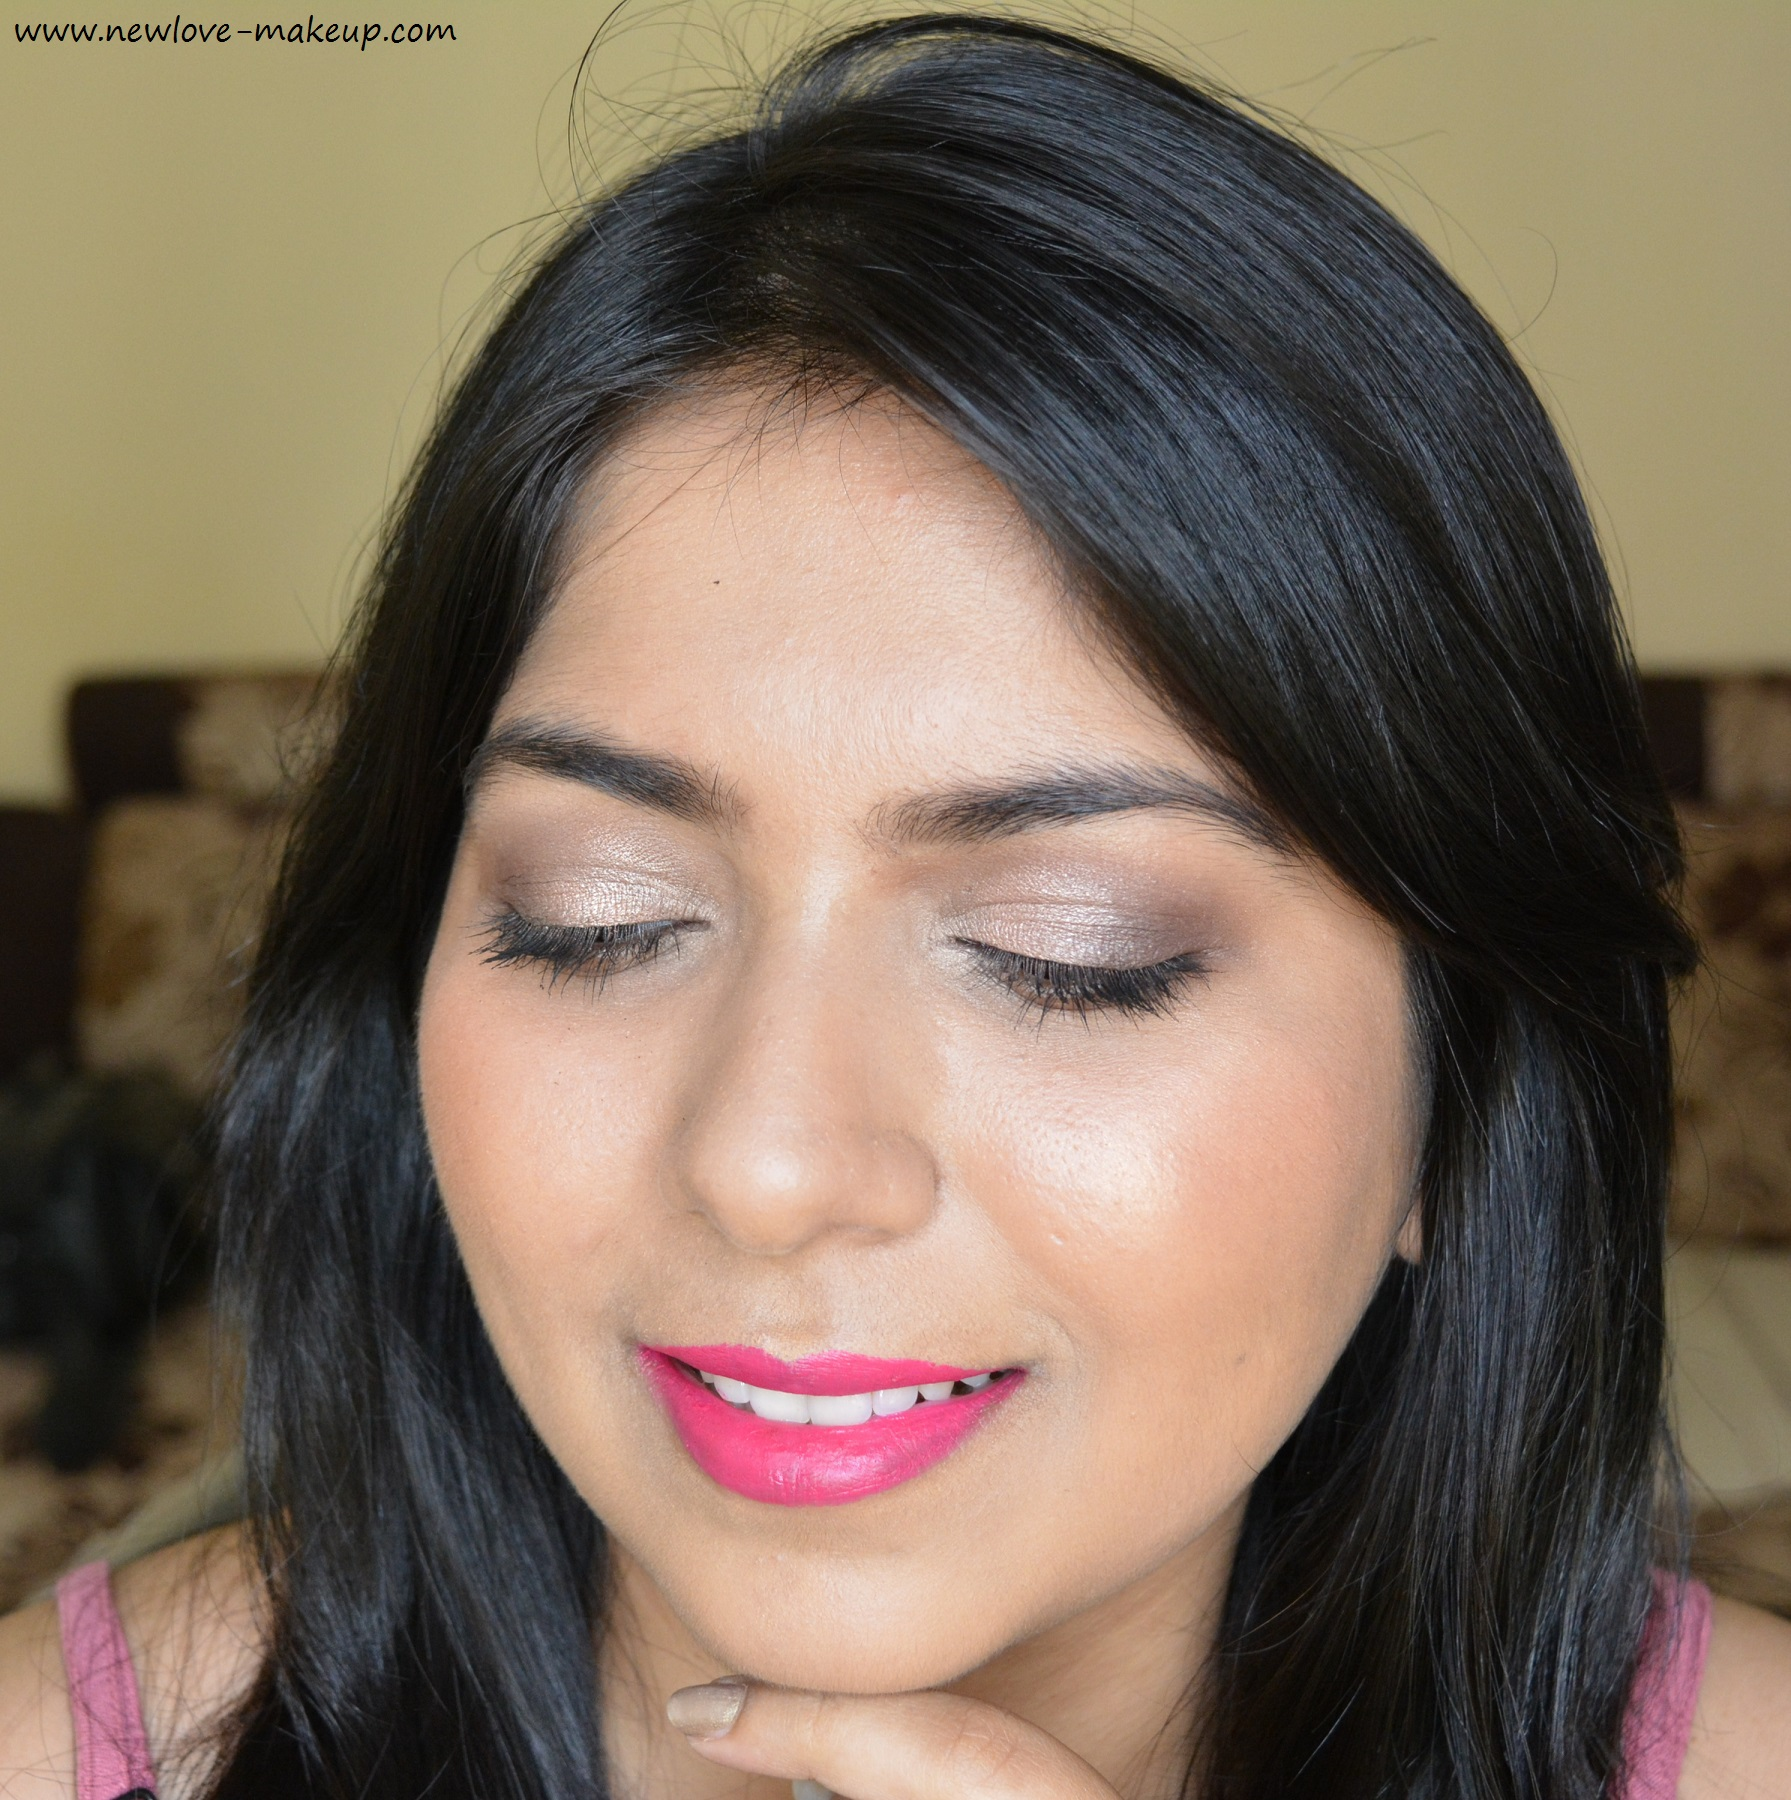 How To Apply Bronzer Makeup? Find Out With Maybelline